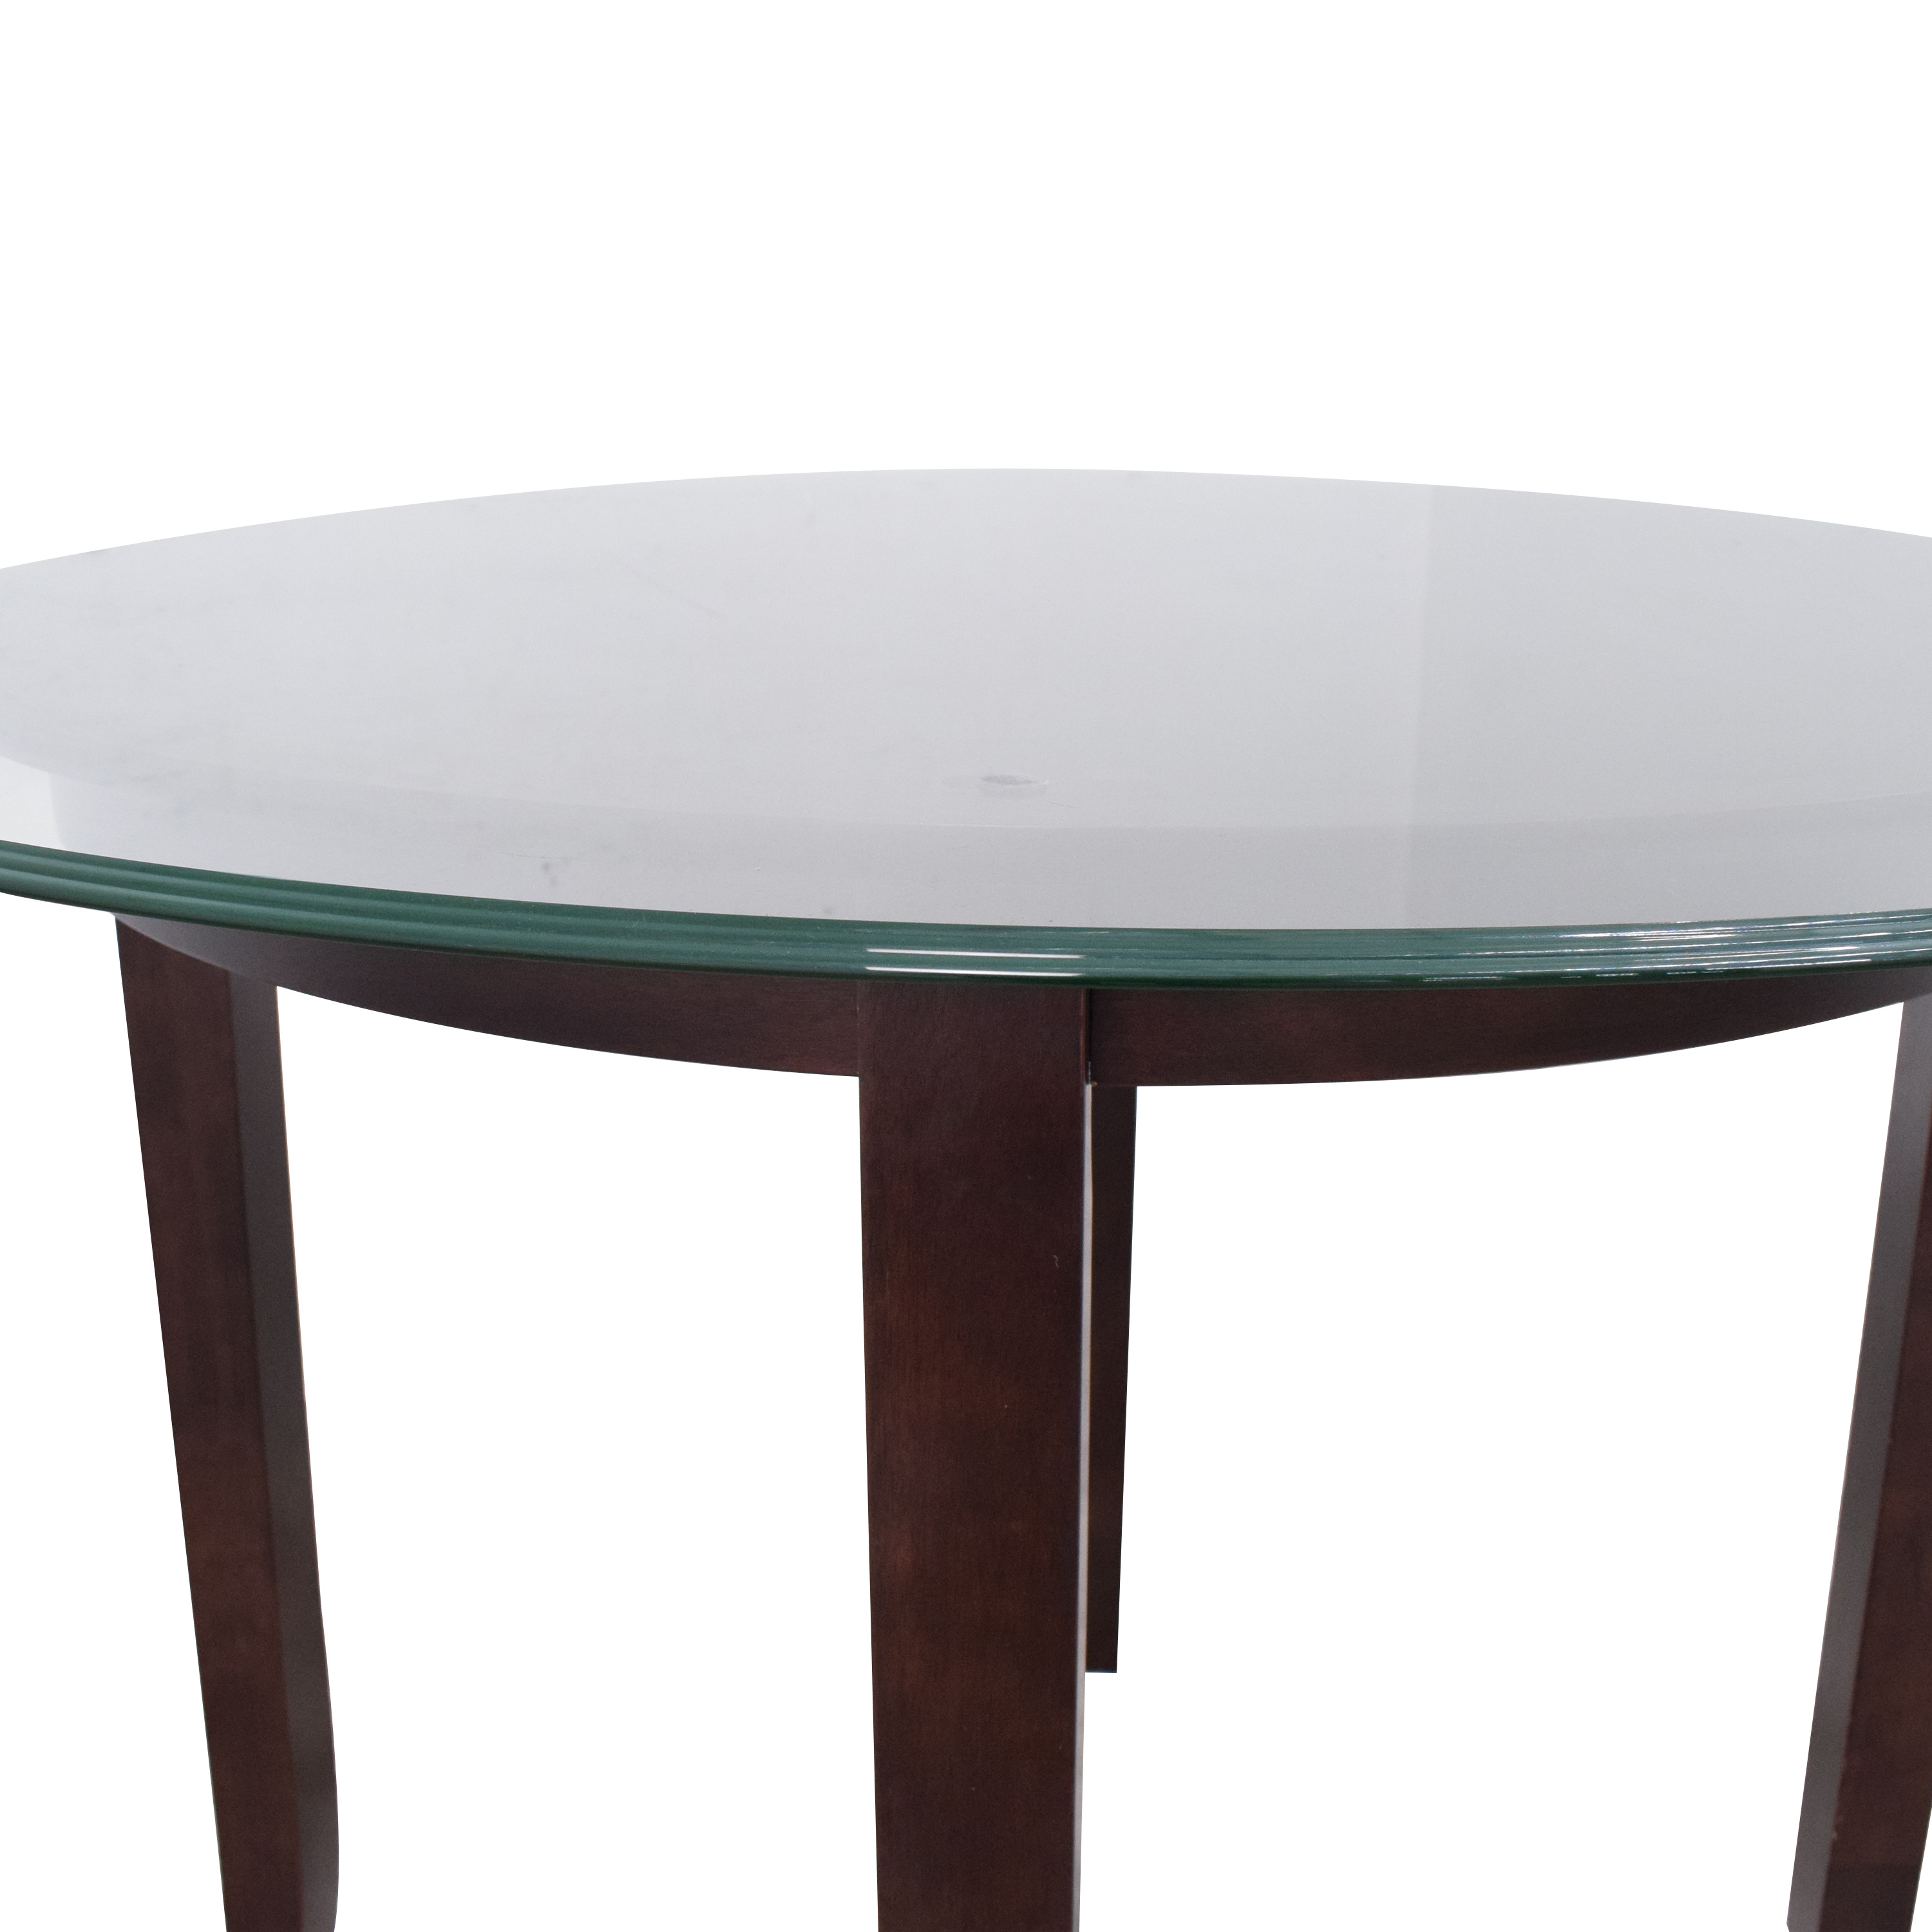 Rooms To Go Rooms To Go Keefer High Top Dining Room Table ct